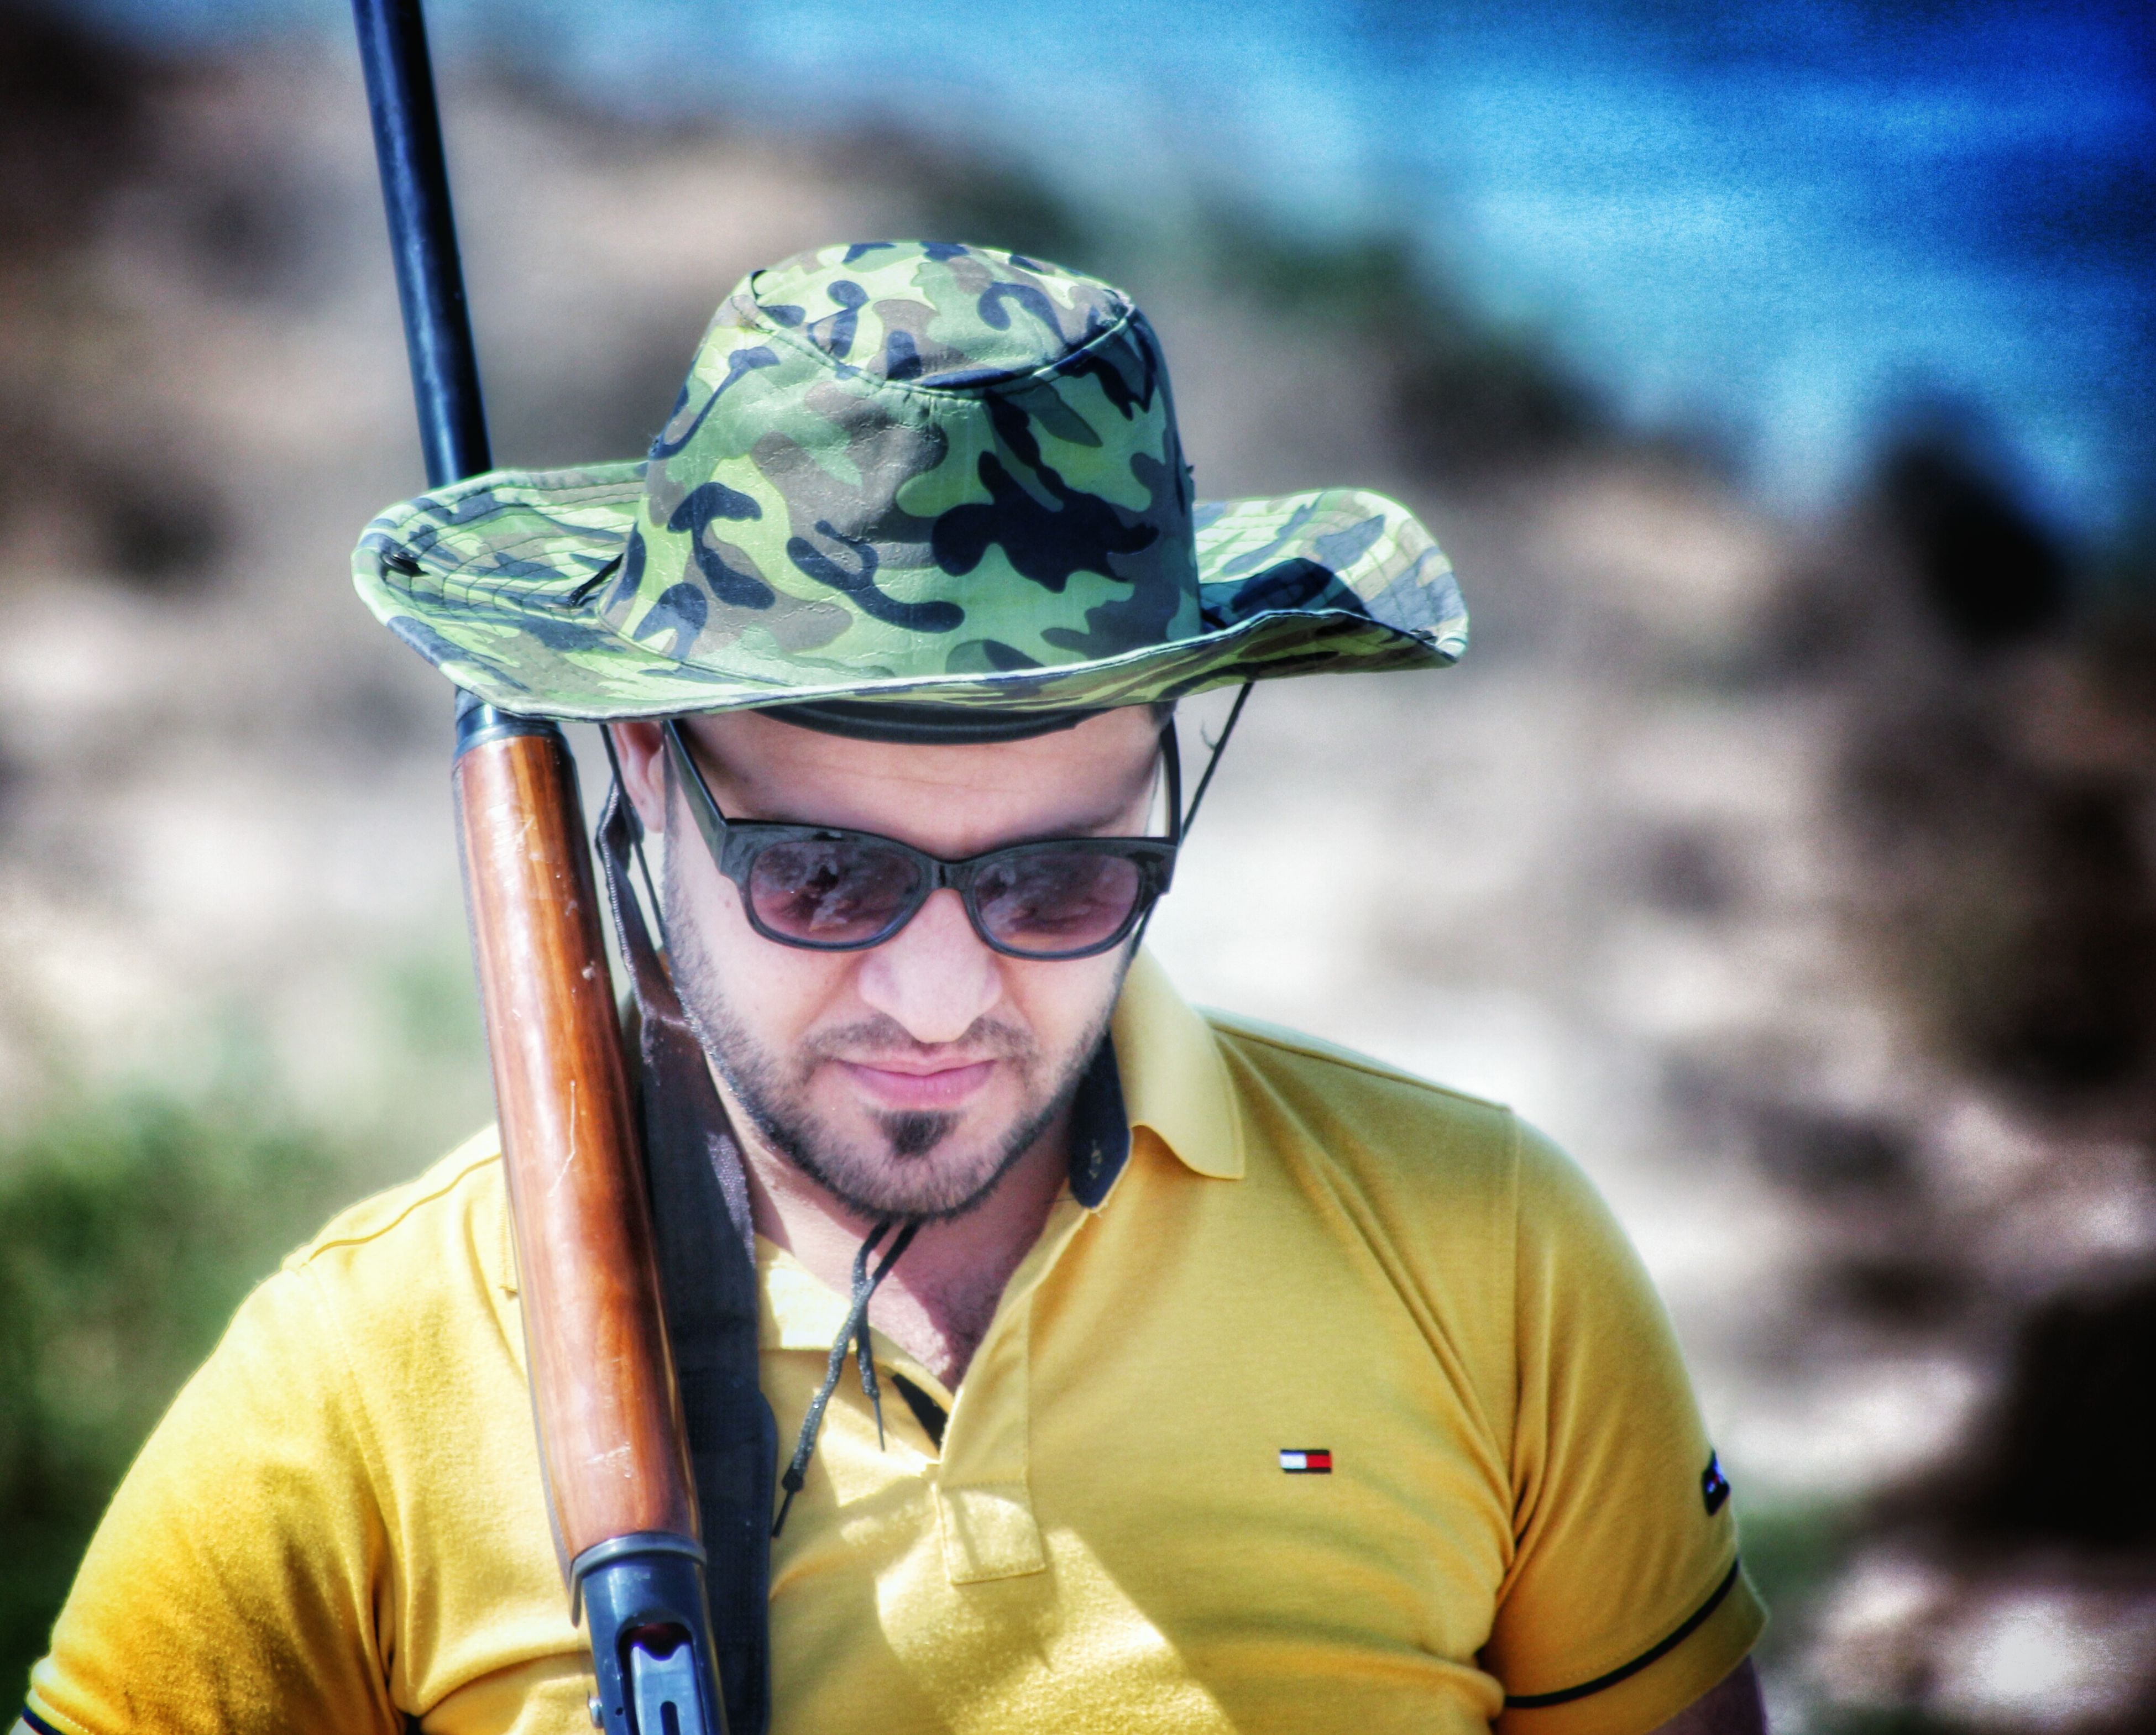 focus on foreground, headshot, lifestyles, person, close-up, leisure activity, portrait, looking at camera, front view, young adult, smiling, casual clothing, holding, waist up, head and shoulders, day, outdoors, hat